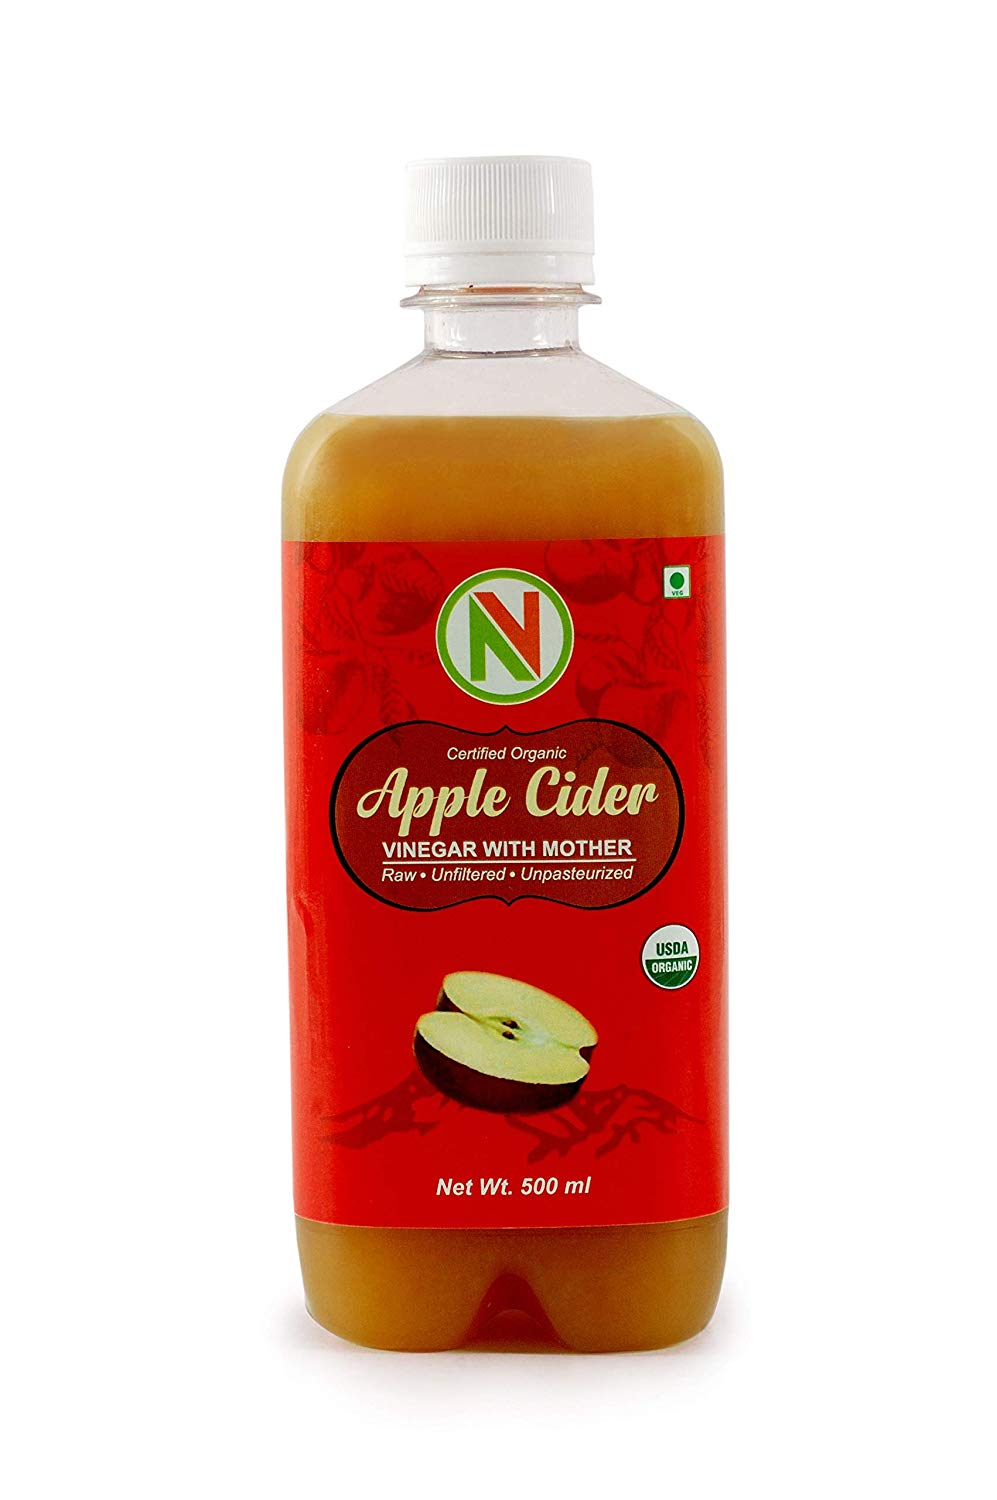 NatureVit Certified Organic Apple Cider Vinegar with Mother [Raw, Unfiltered, UnRefined] - Nature Vit